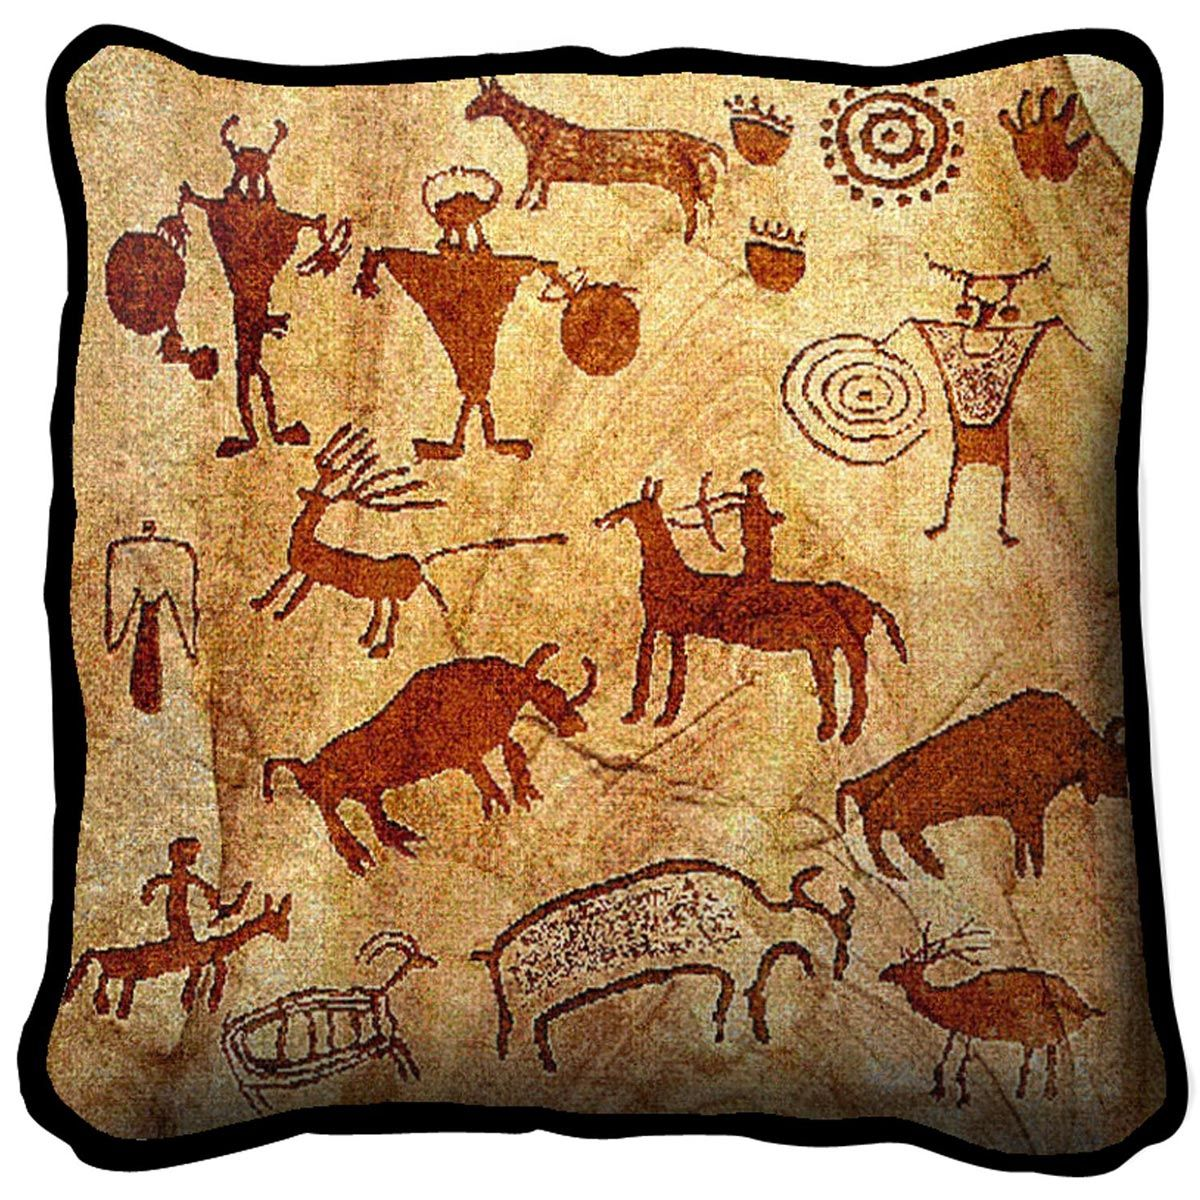 Rock Art of the Ancients Pillow